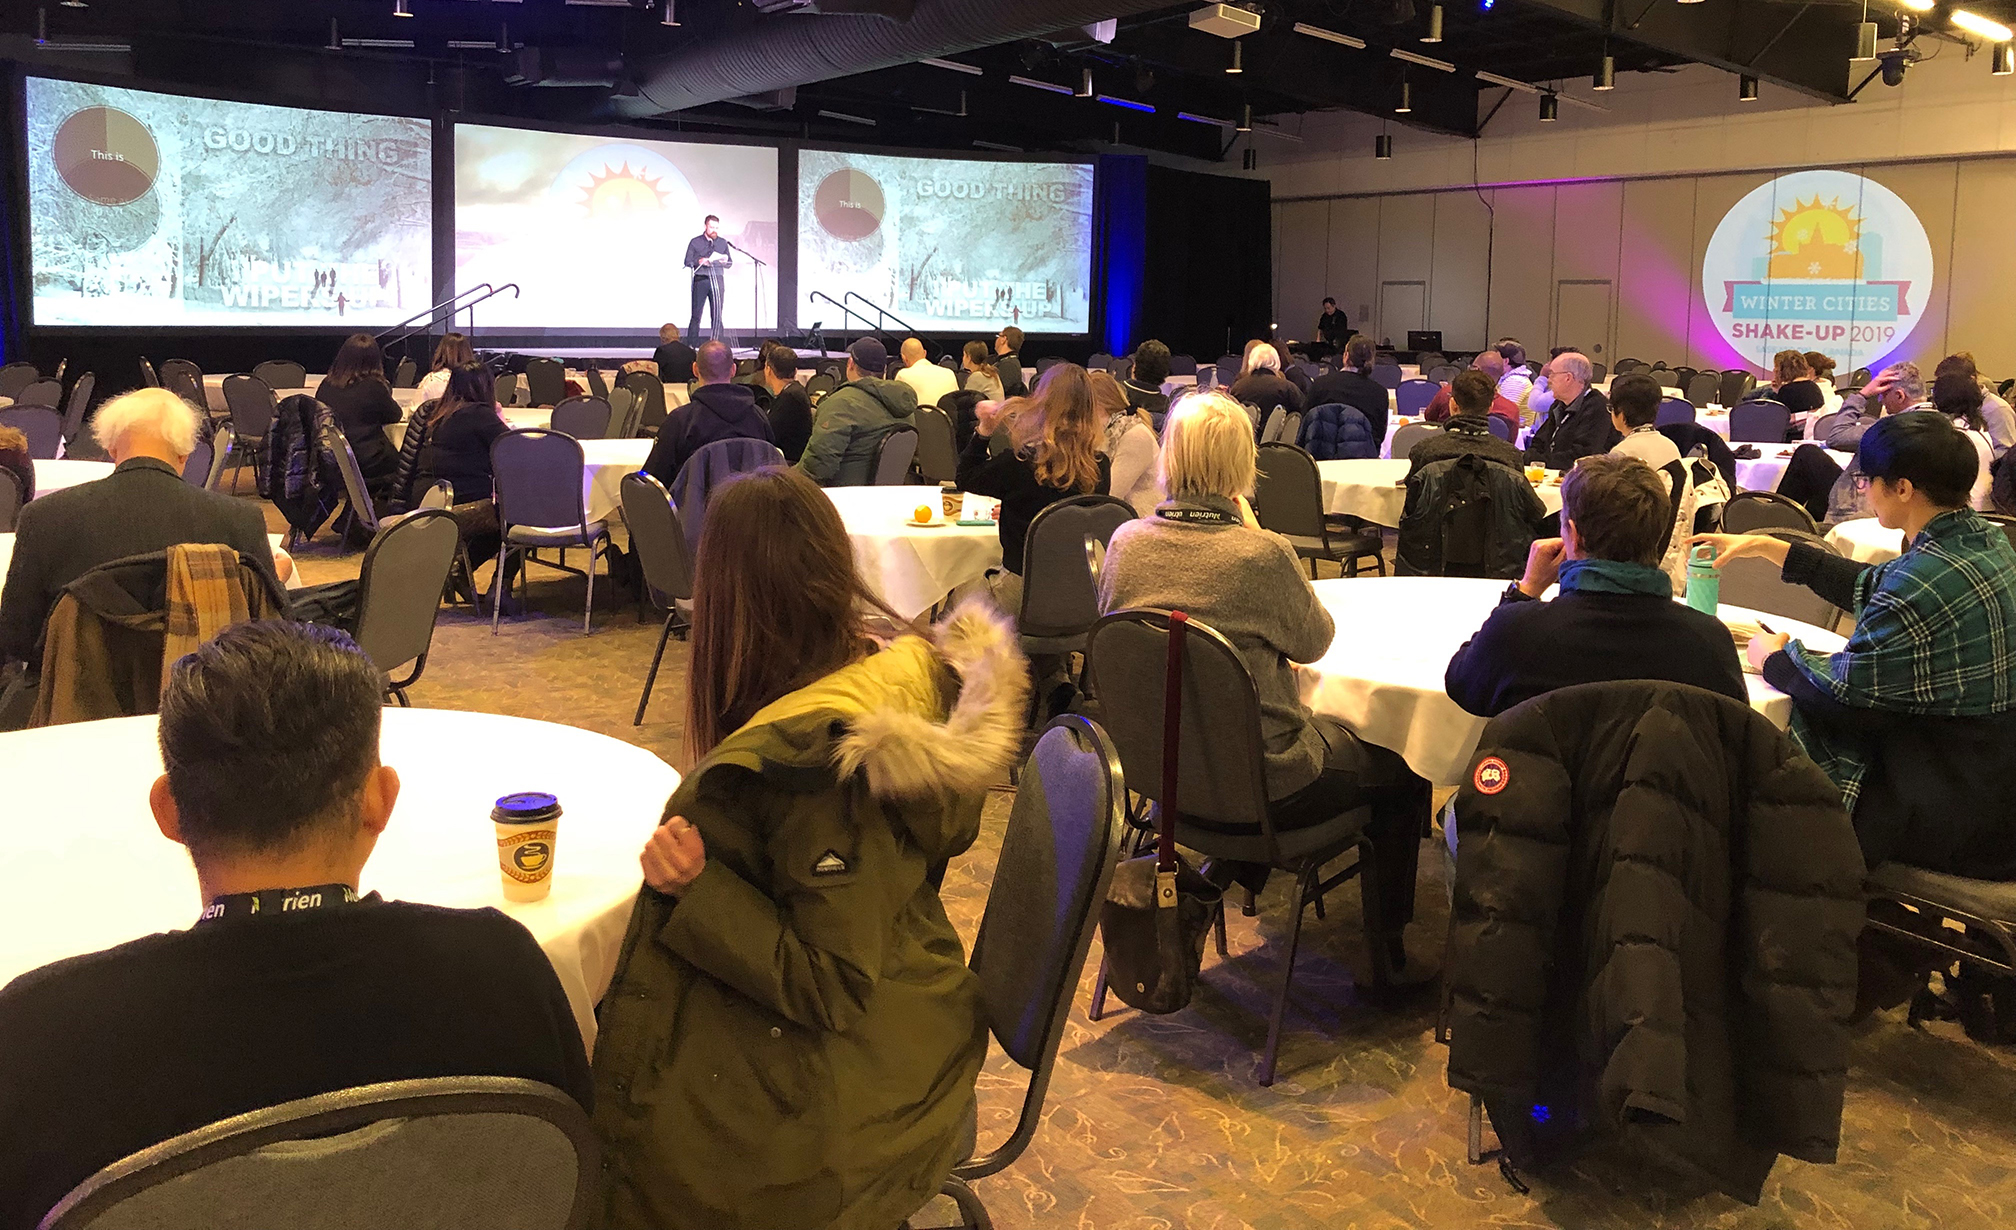 2019 Winter Cities Shake-Up Conference